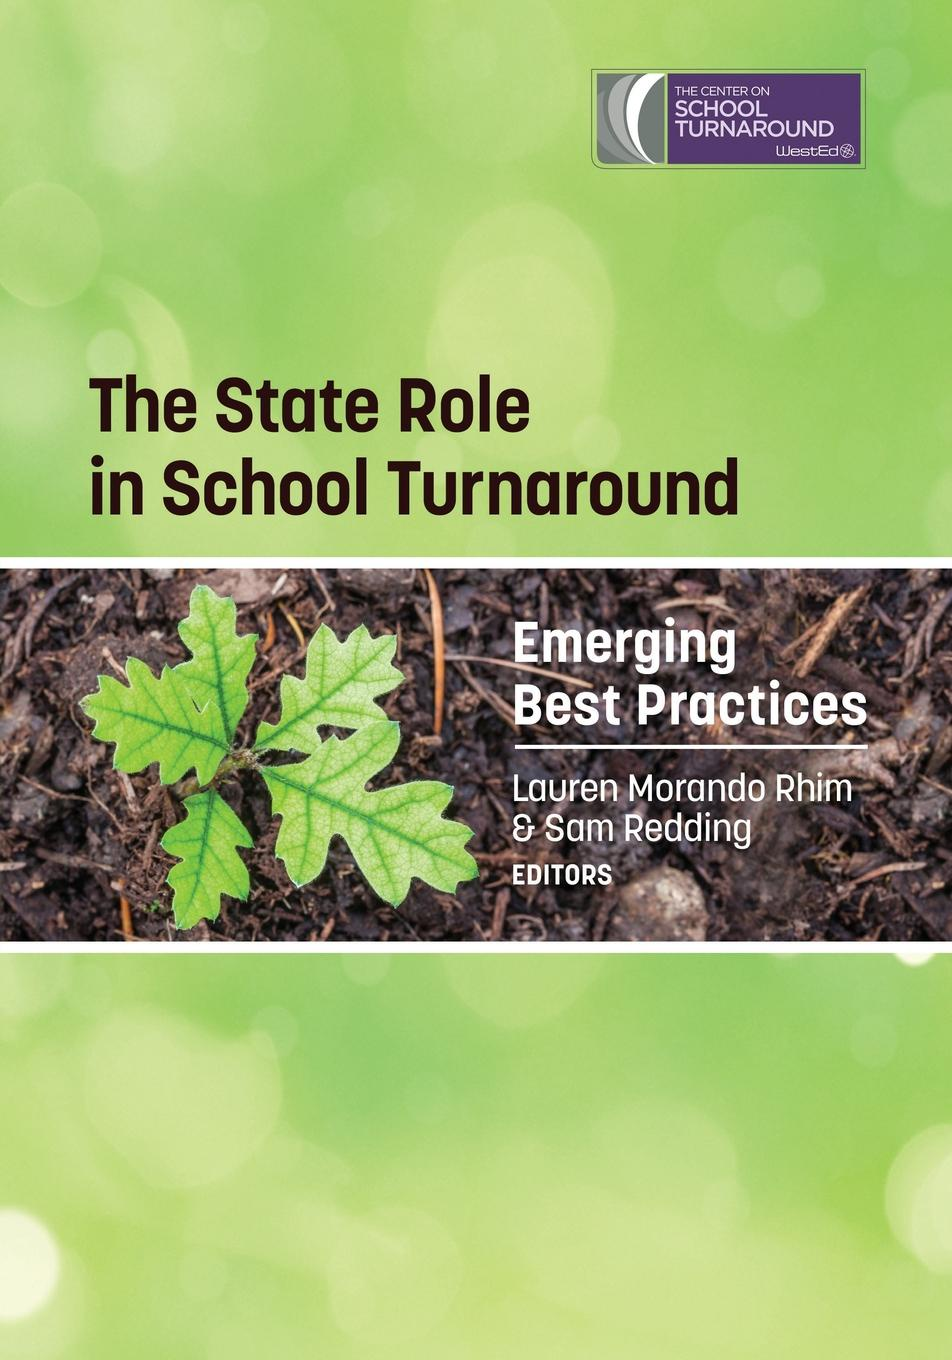 The State Role in School Turnaround. Emerging Best Practices alma harris leading school turnaround how successful leaders transform low performing schools